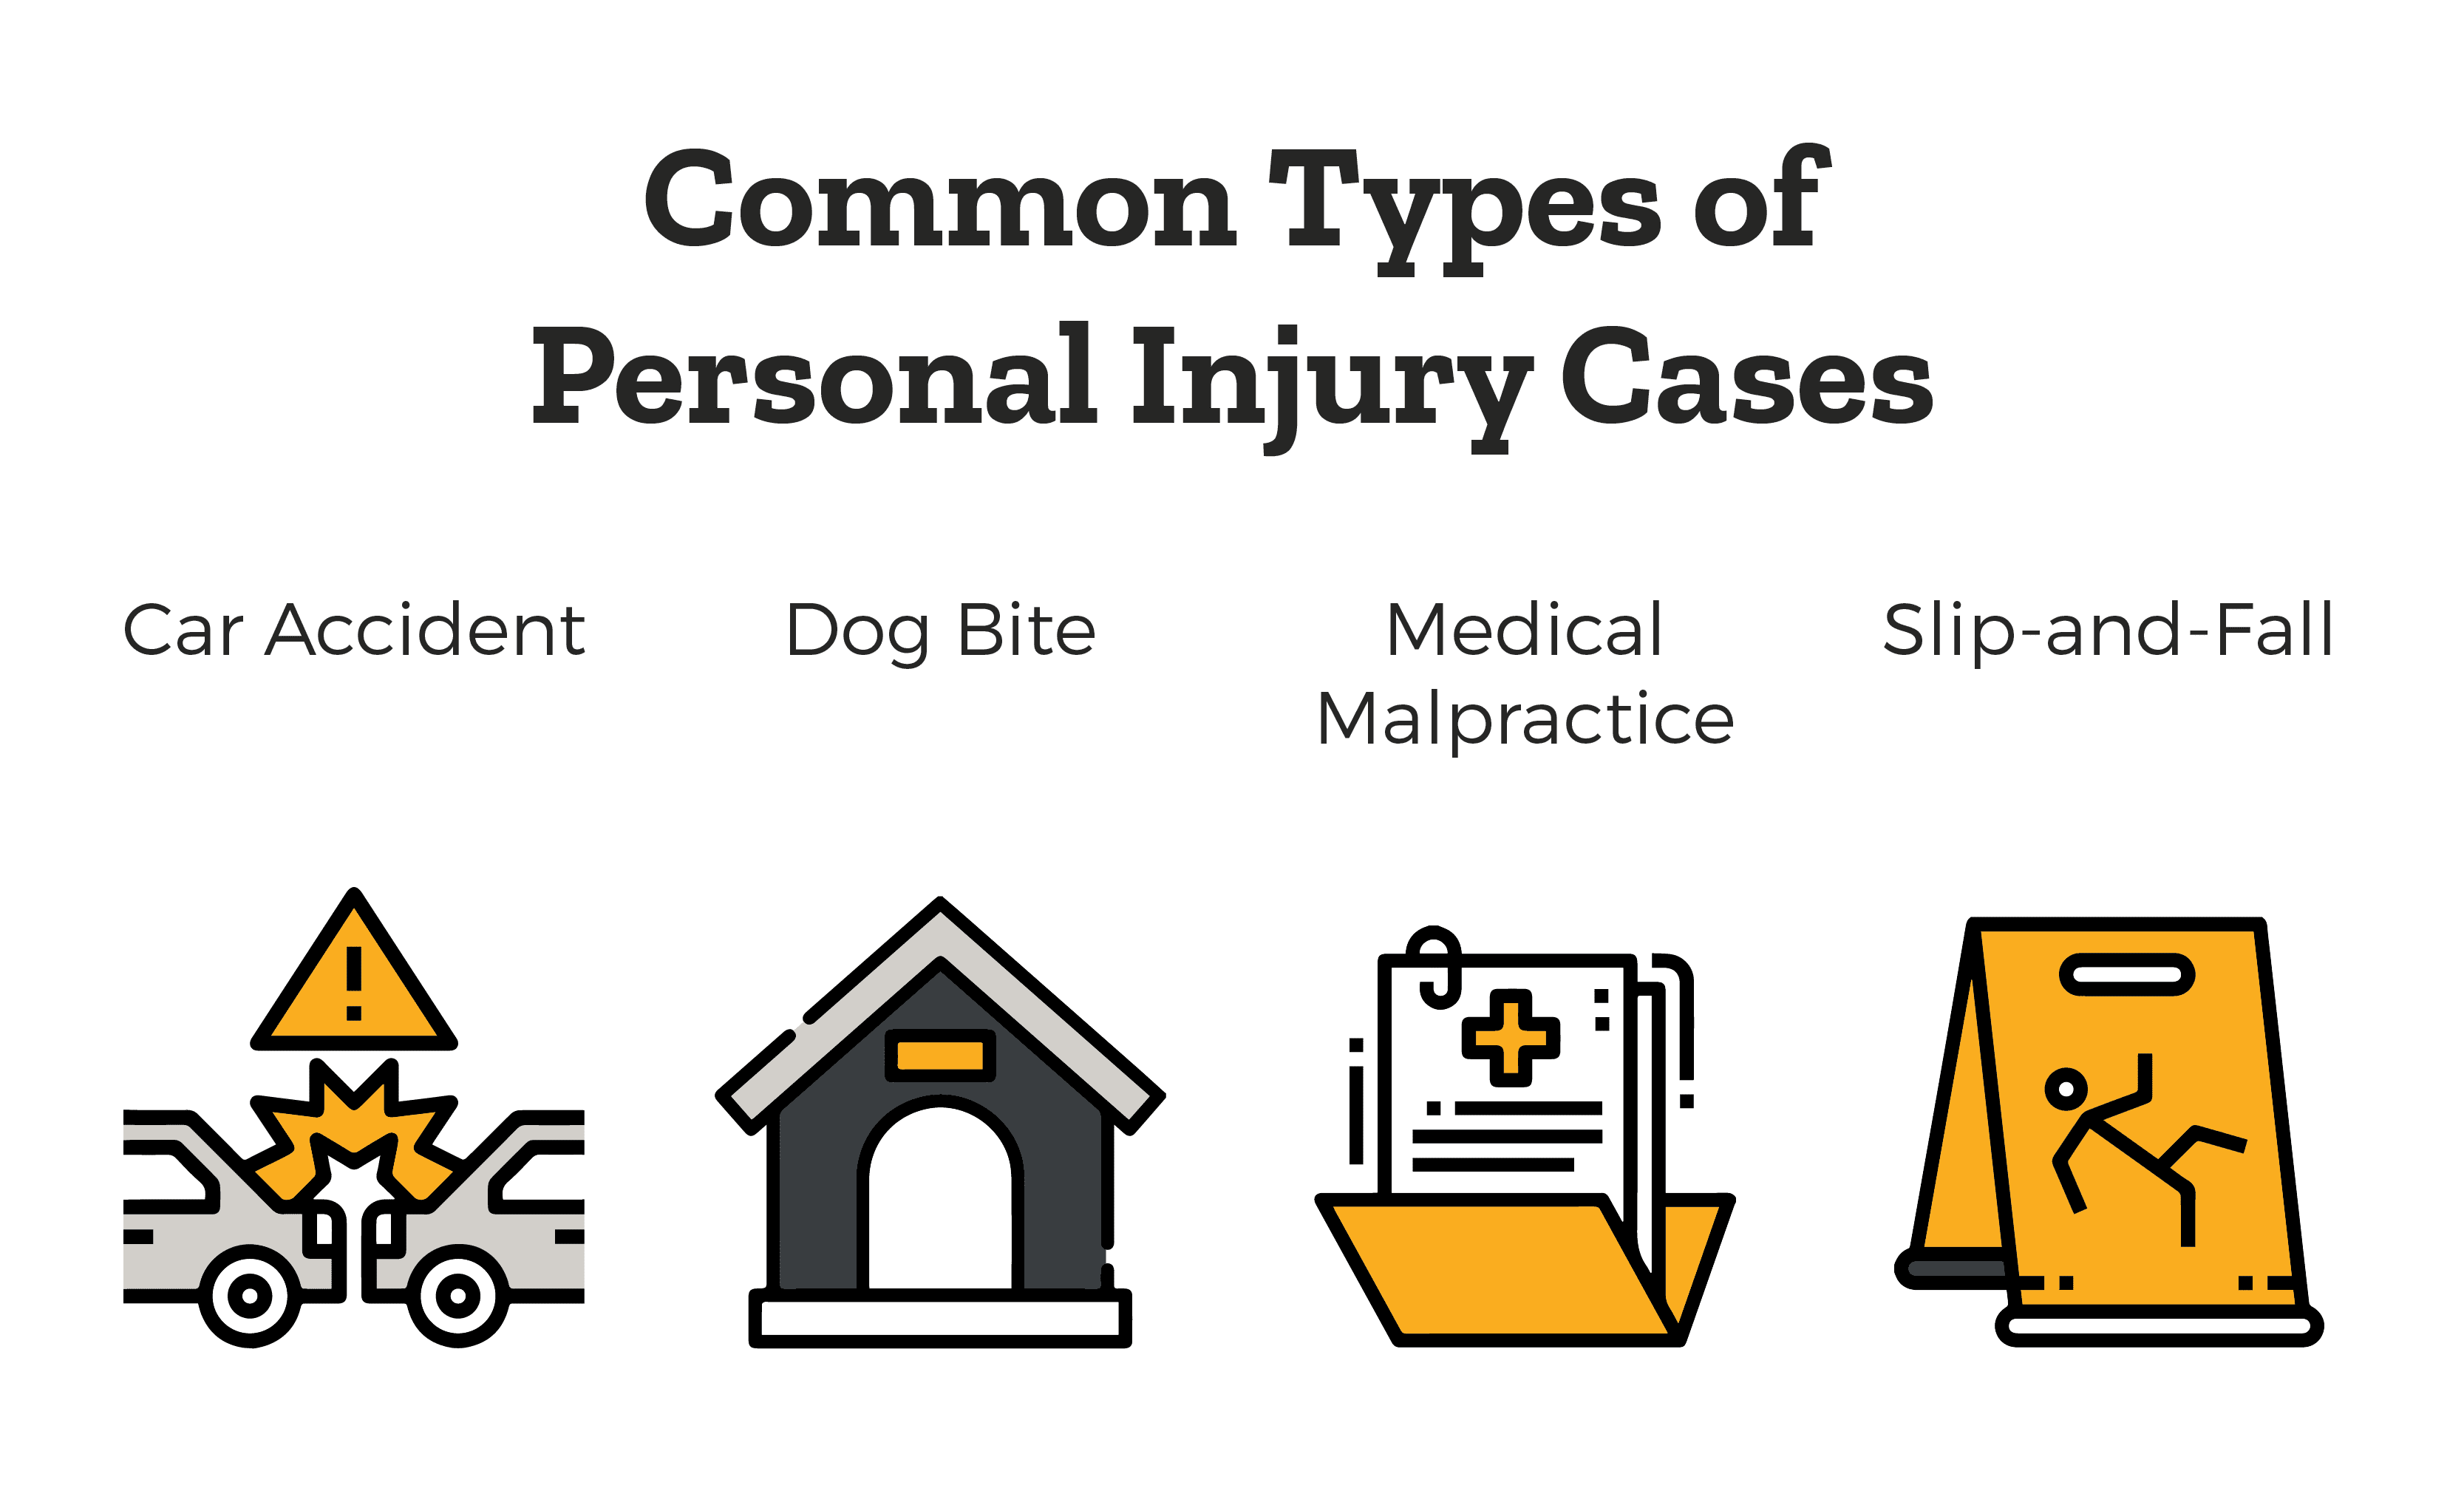 Most Common Types of Personal Injury Cases - Car accident, Dog bite, Medical Malpractice, and Slip and fall.